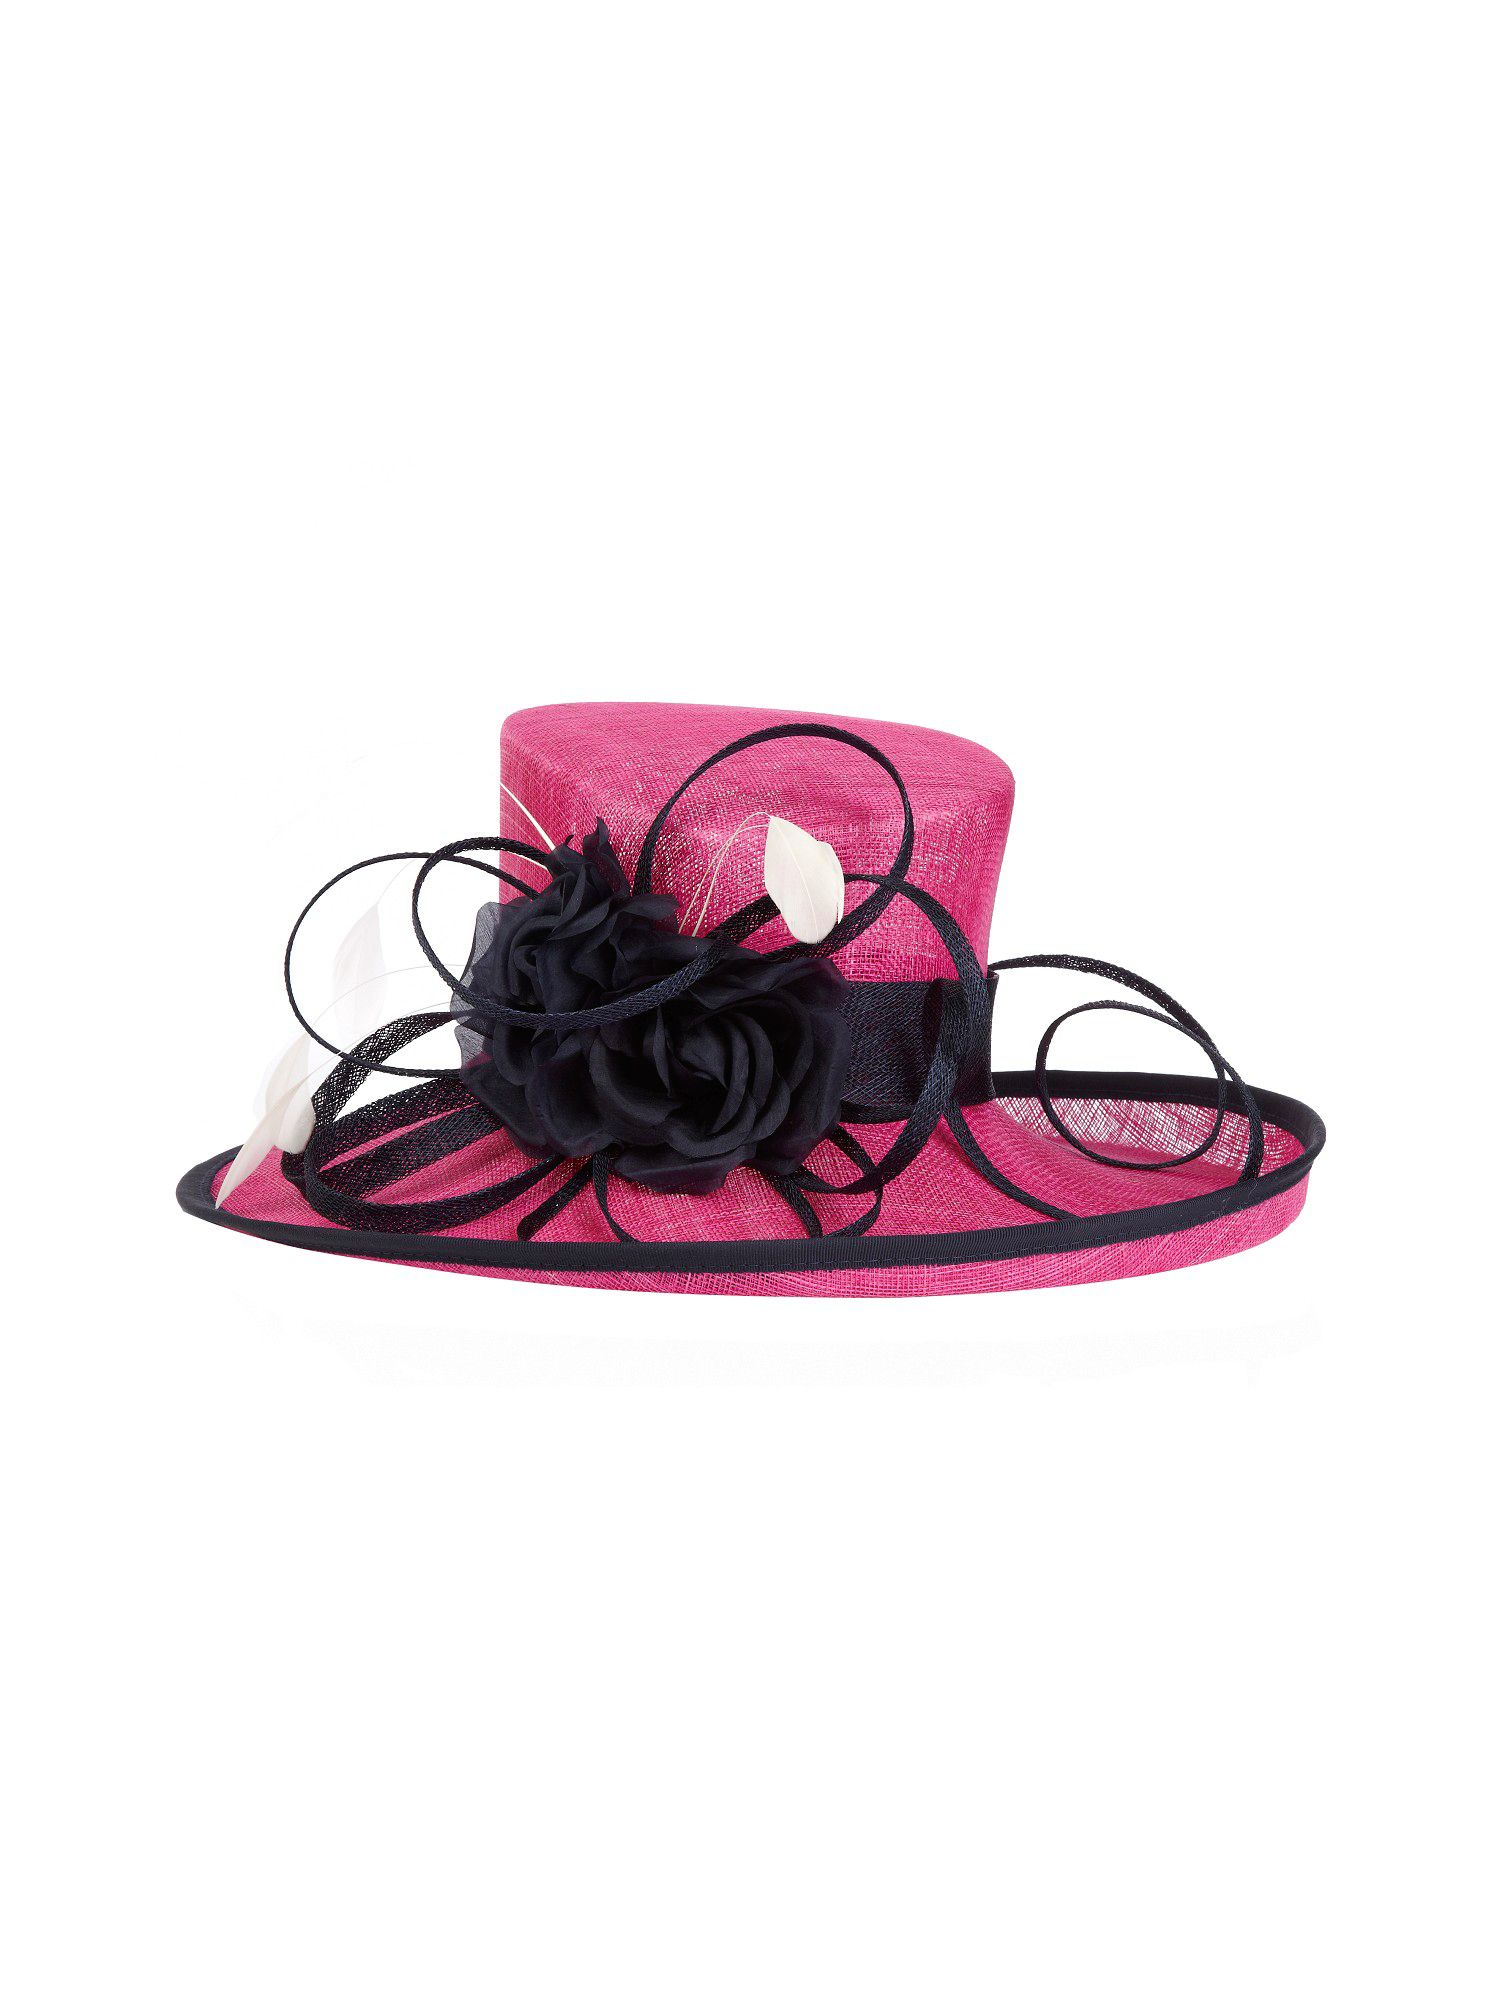 Navy & fucshia occasion hat